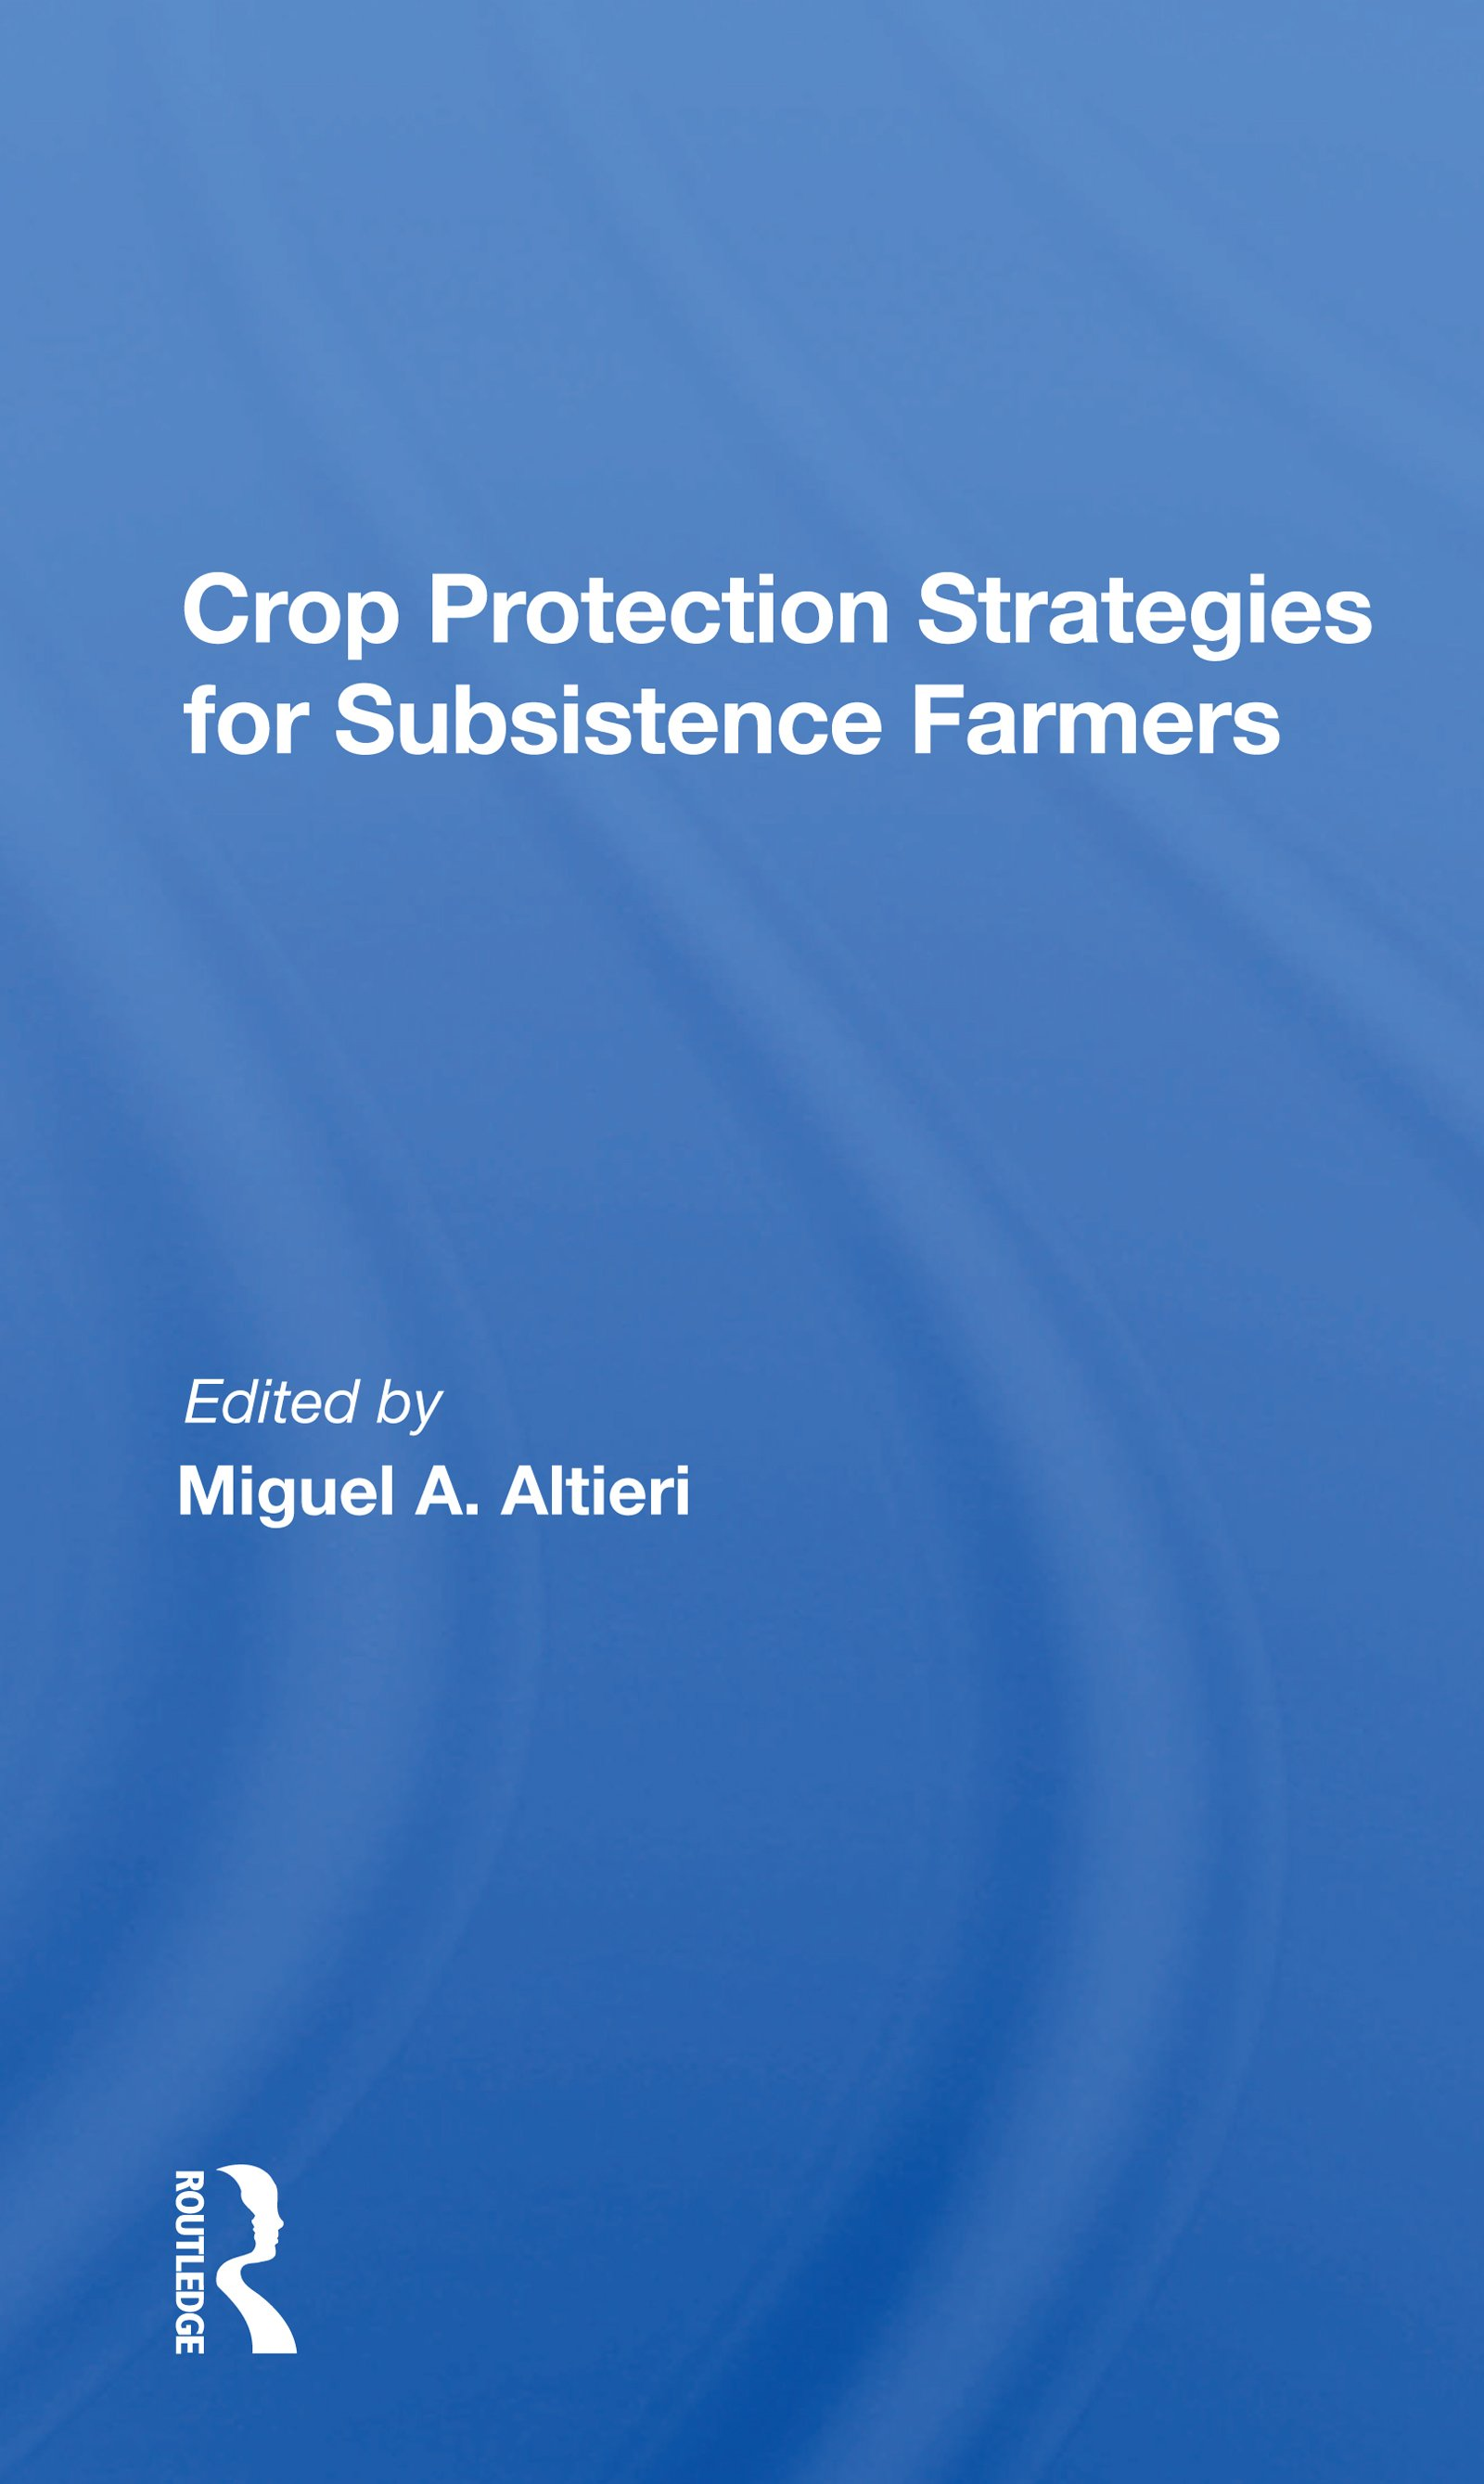 Crop Protection Strategies for Subsistence Farmers